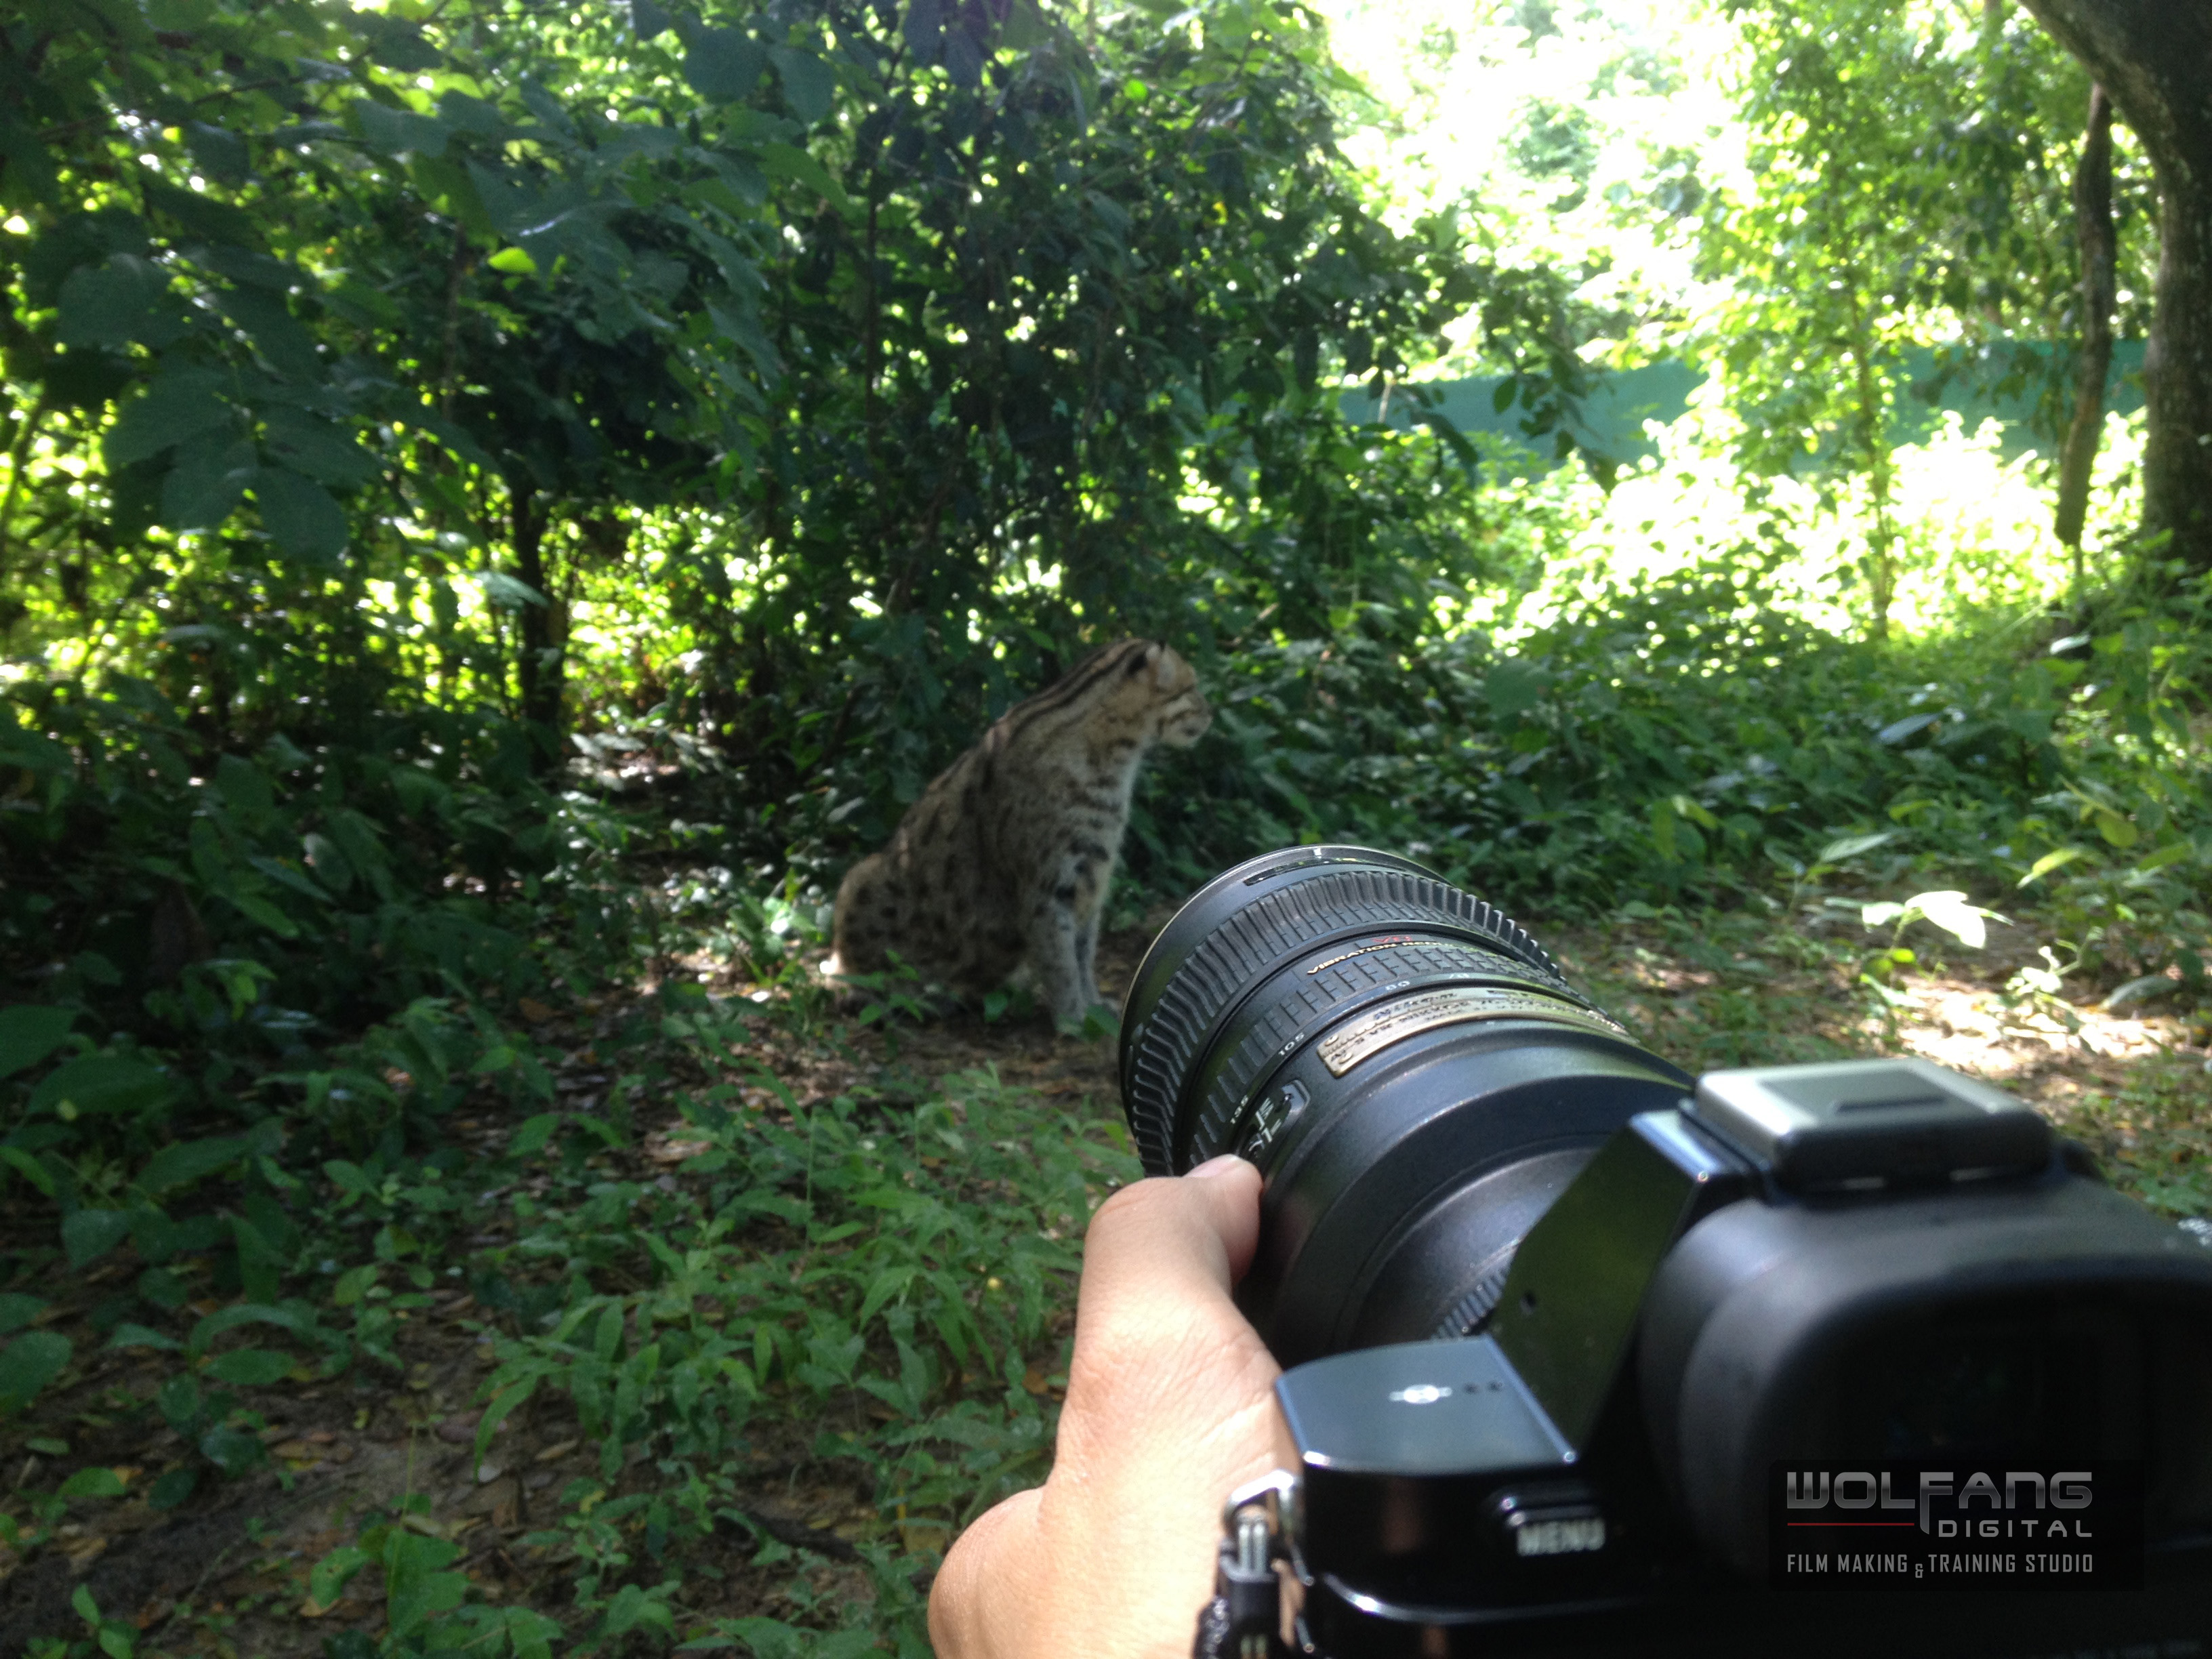 The rare fishing cat in Thailand- captured on Sony A7s with Nikon 70-200mm F2.8 lens